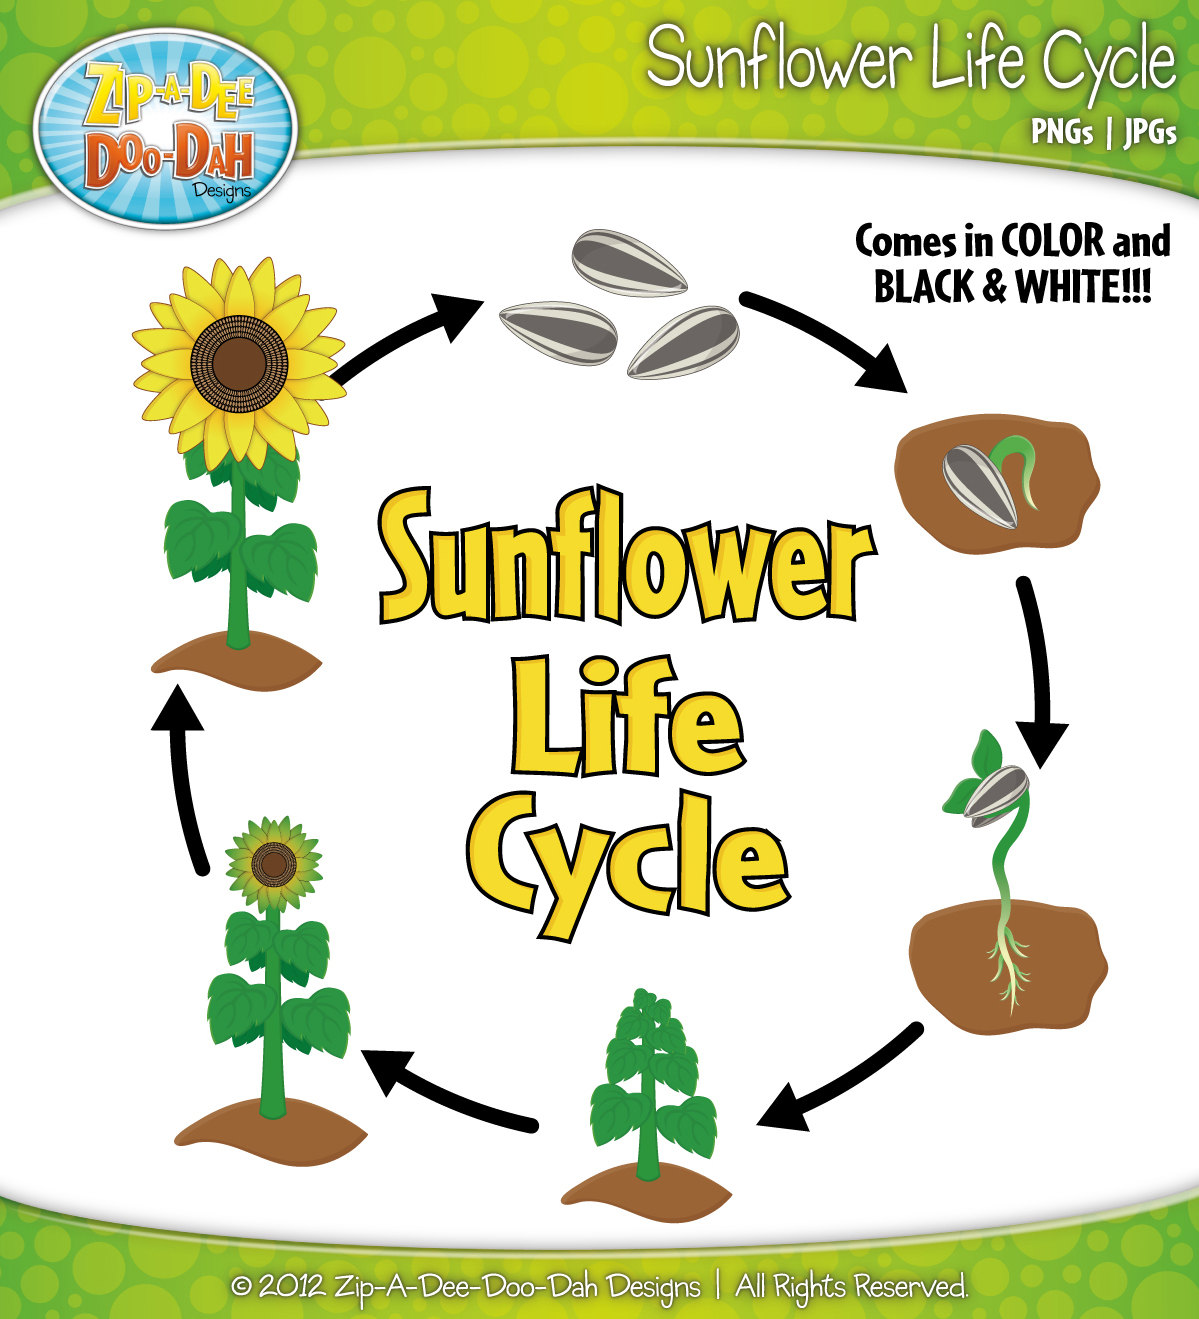 Plant life cycle clipart graphic freeuse Life cycle of a plant clipart - ClipartFest graphic freeuse